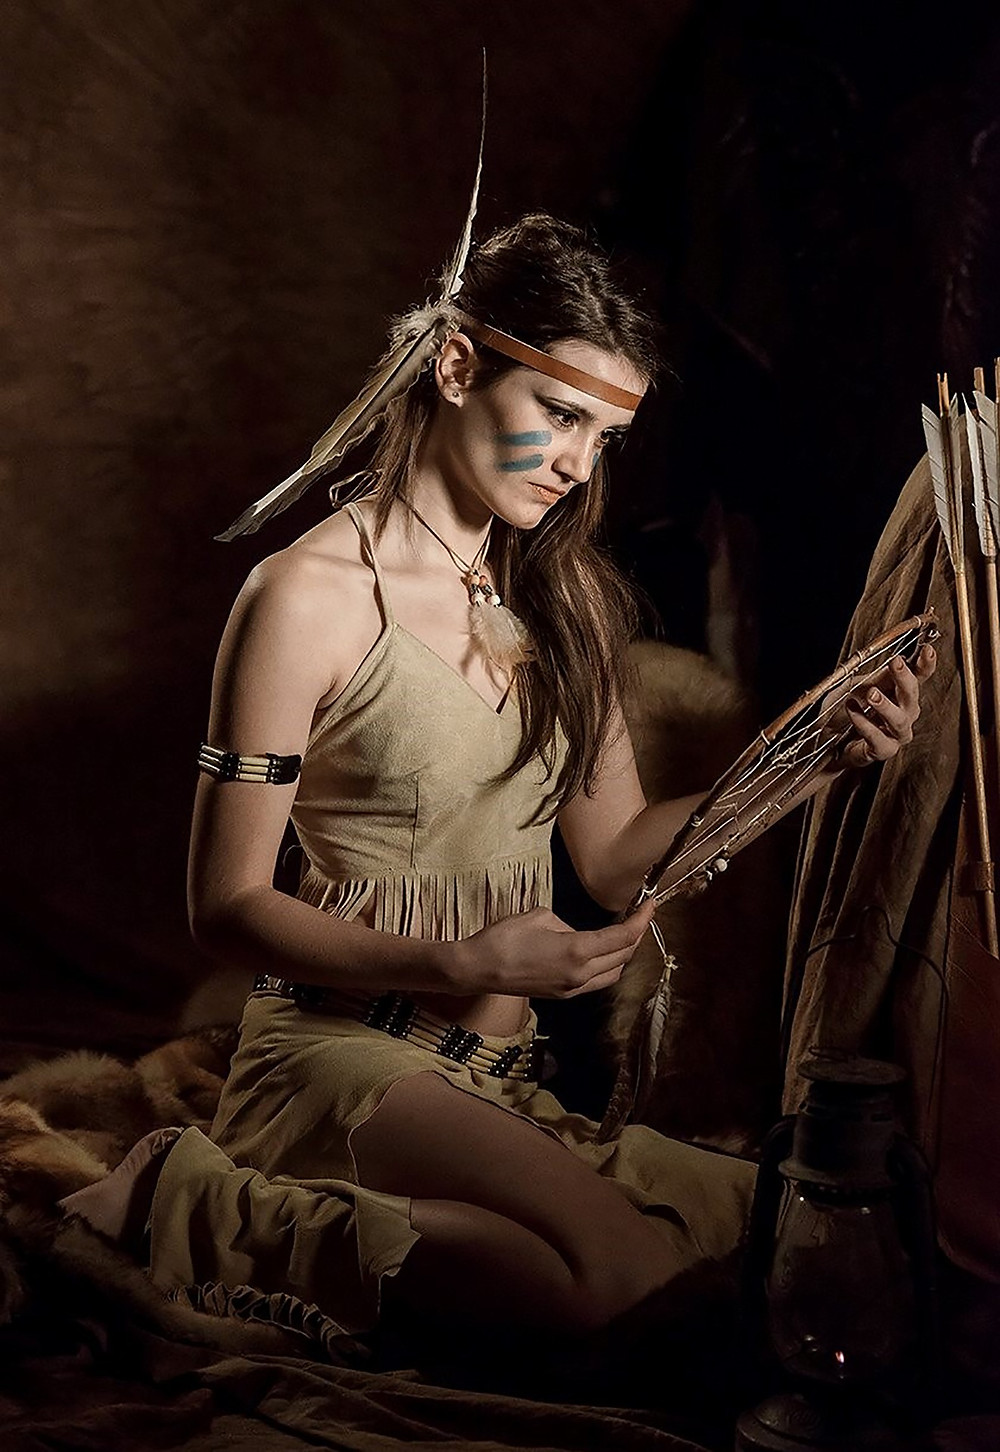 #Americanindian history and #culture. #NativeAmerican,#culturalidentity. Johnny Depp, as Tonto